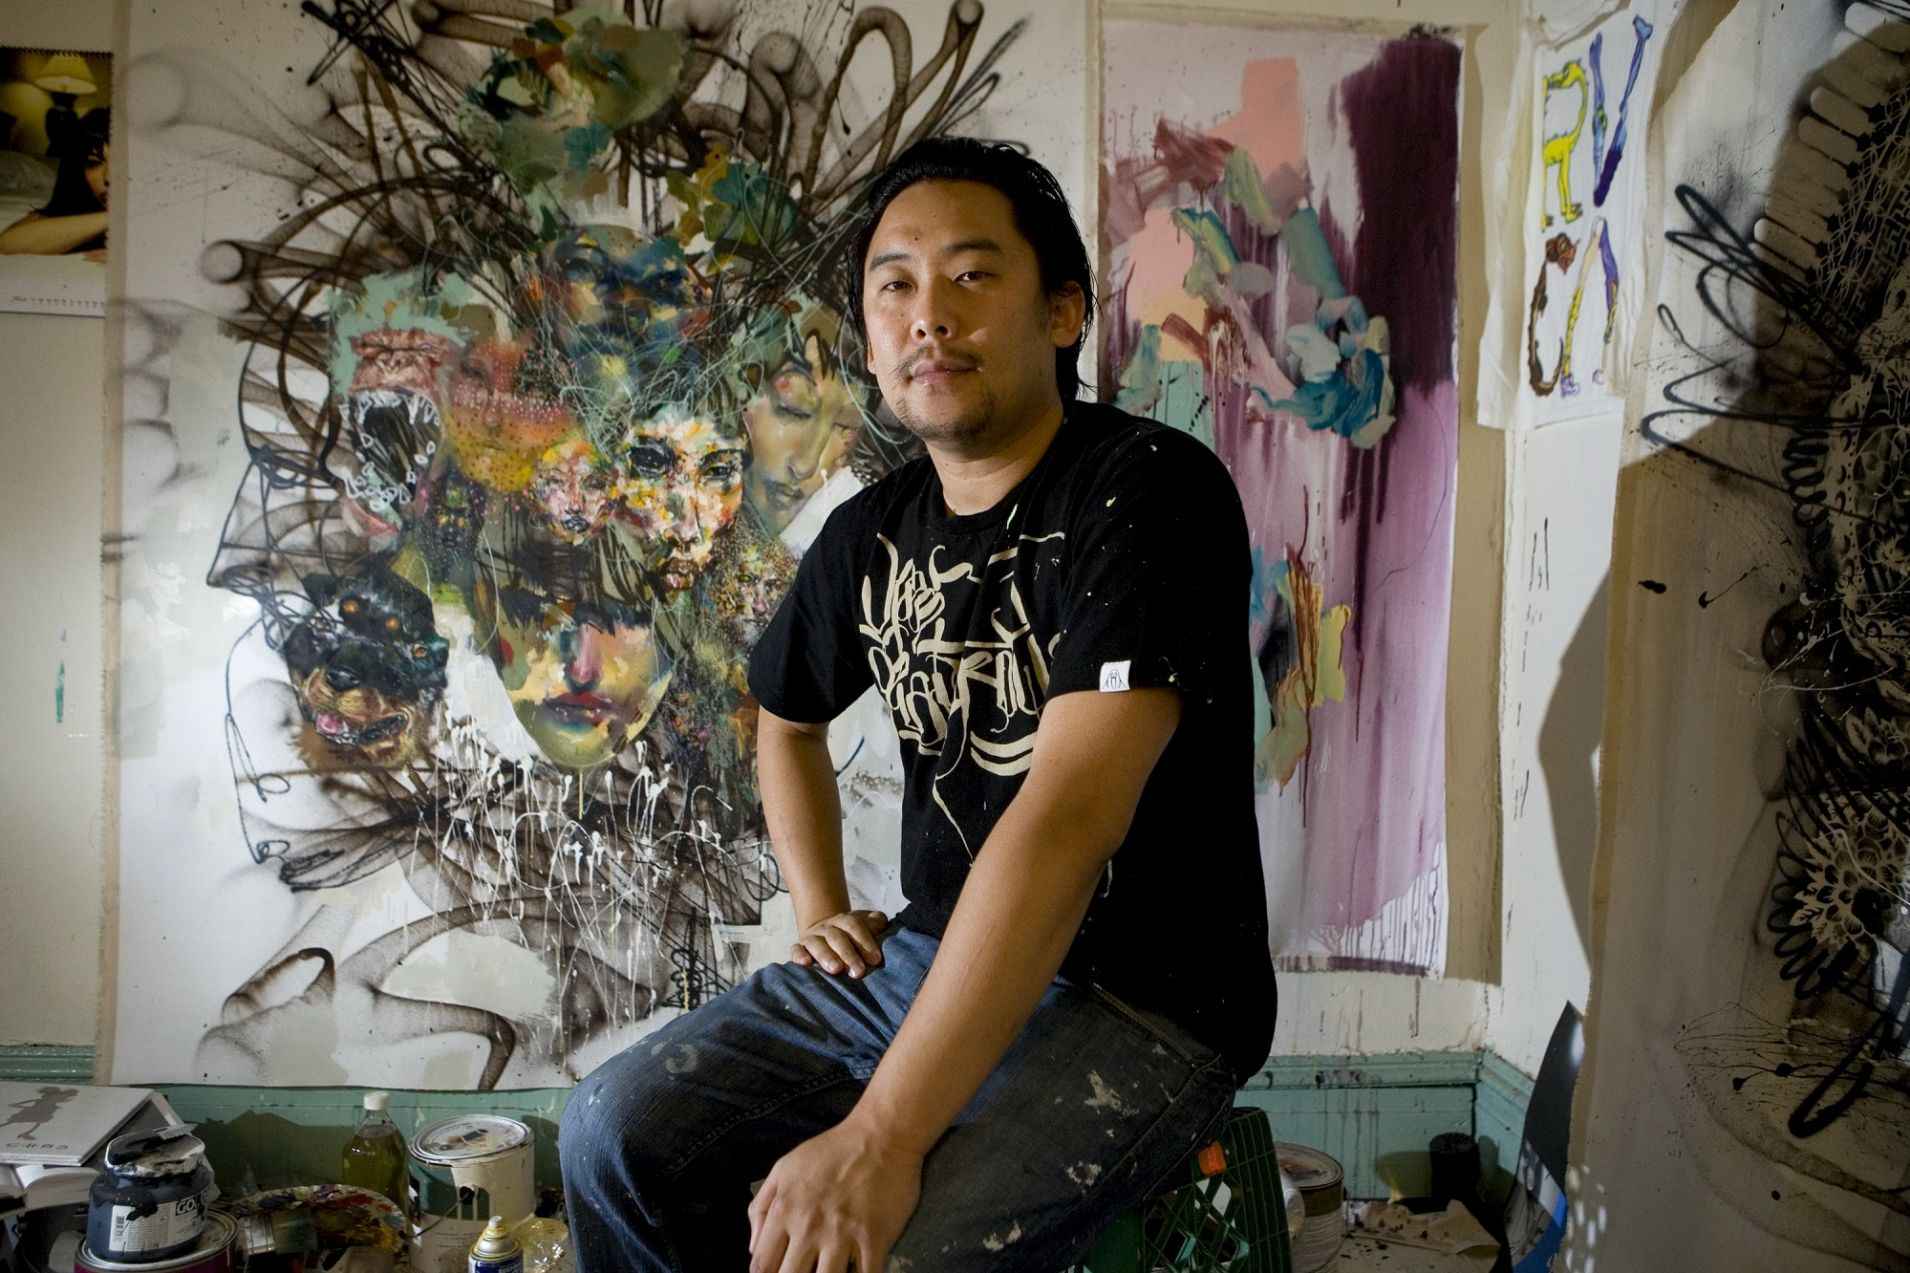 Heard of David Choe? - In 2005, internet entrepreneur Sean Parker, a longtime fan of David asked him to paint murals in the interior of Facebook's first office, and in 2007, Mark Zuckerberg commissioned him to paint more for their next office. Although he thought the Facebook business model was